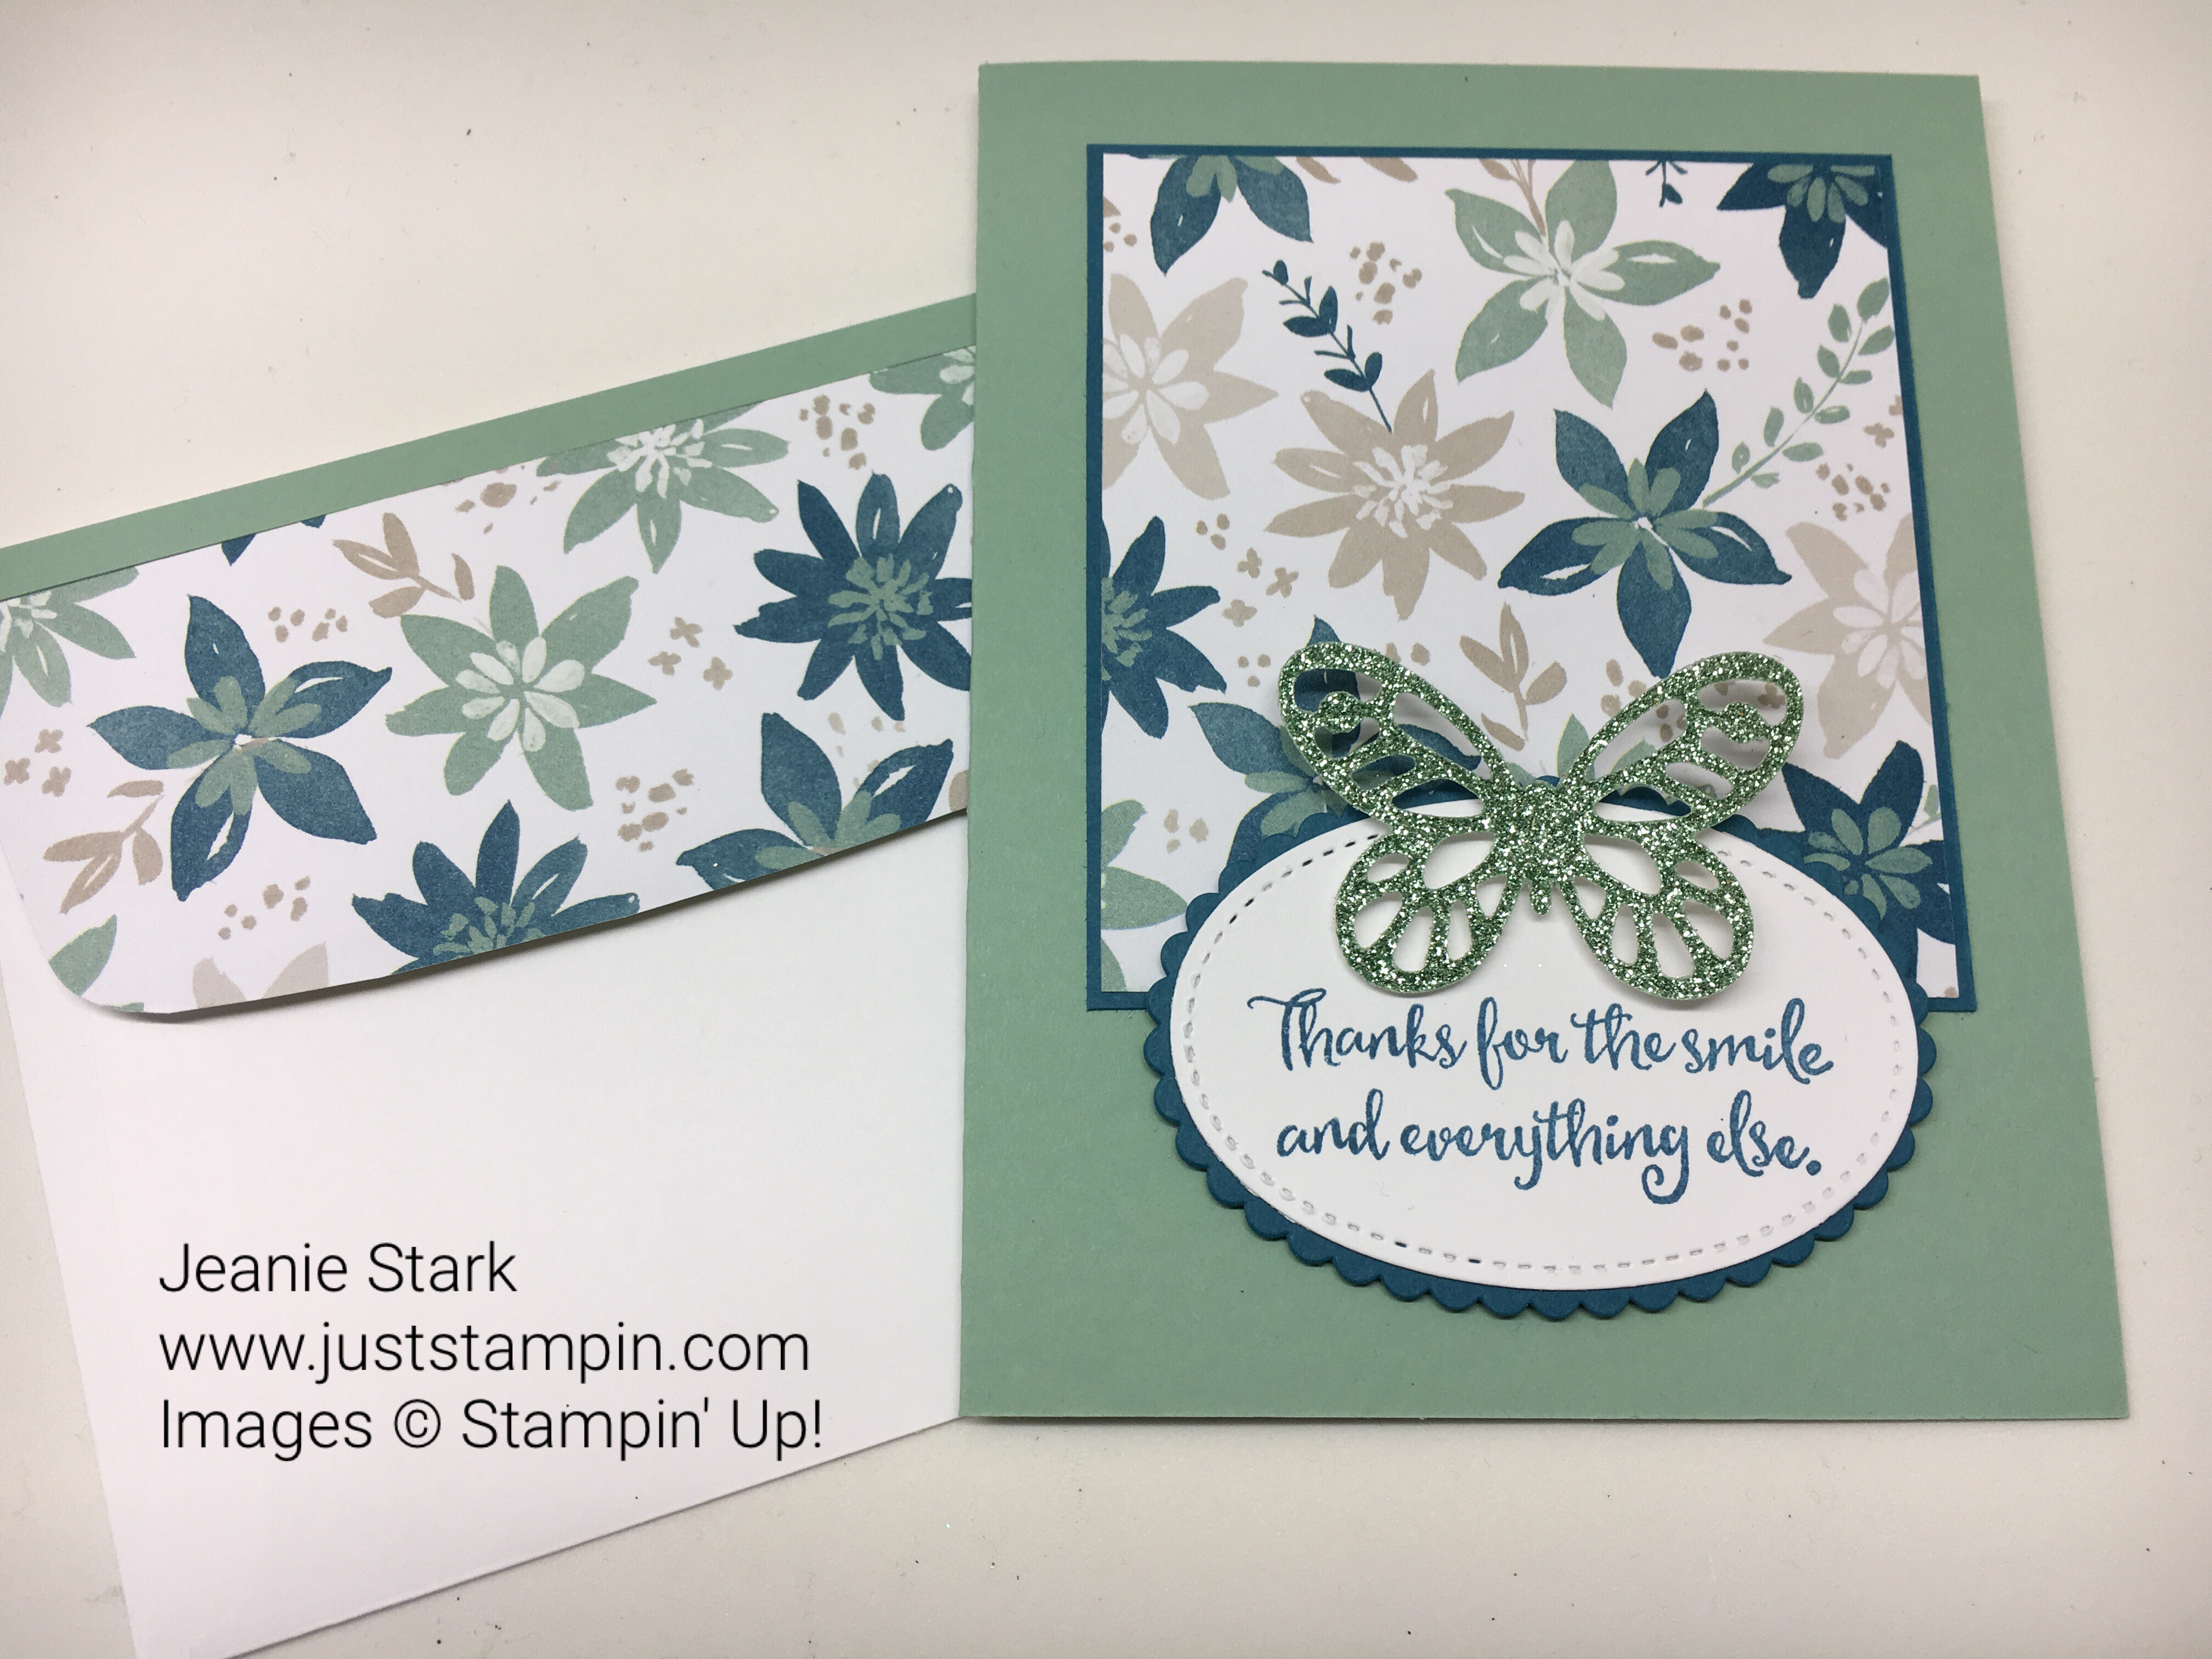 Stampin Up Clean & SImple Dragonfly Dreams Bold Butterfly thank you card idea - Jeanie Stark StampinUp